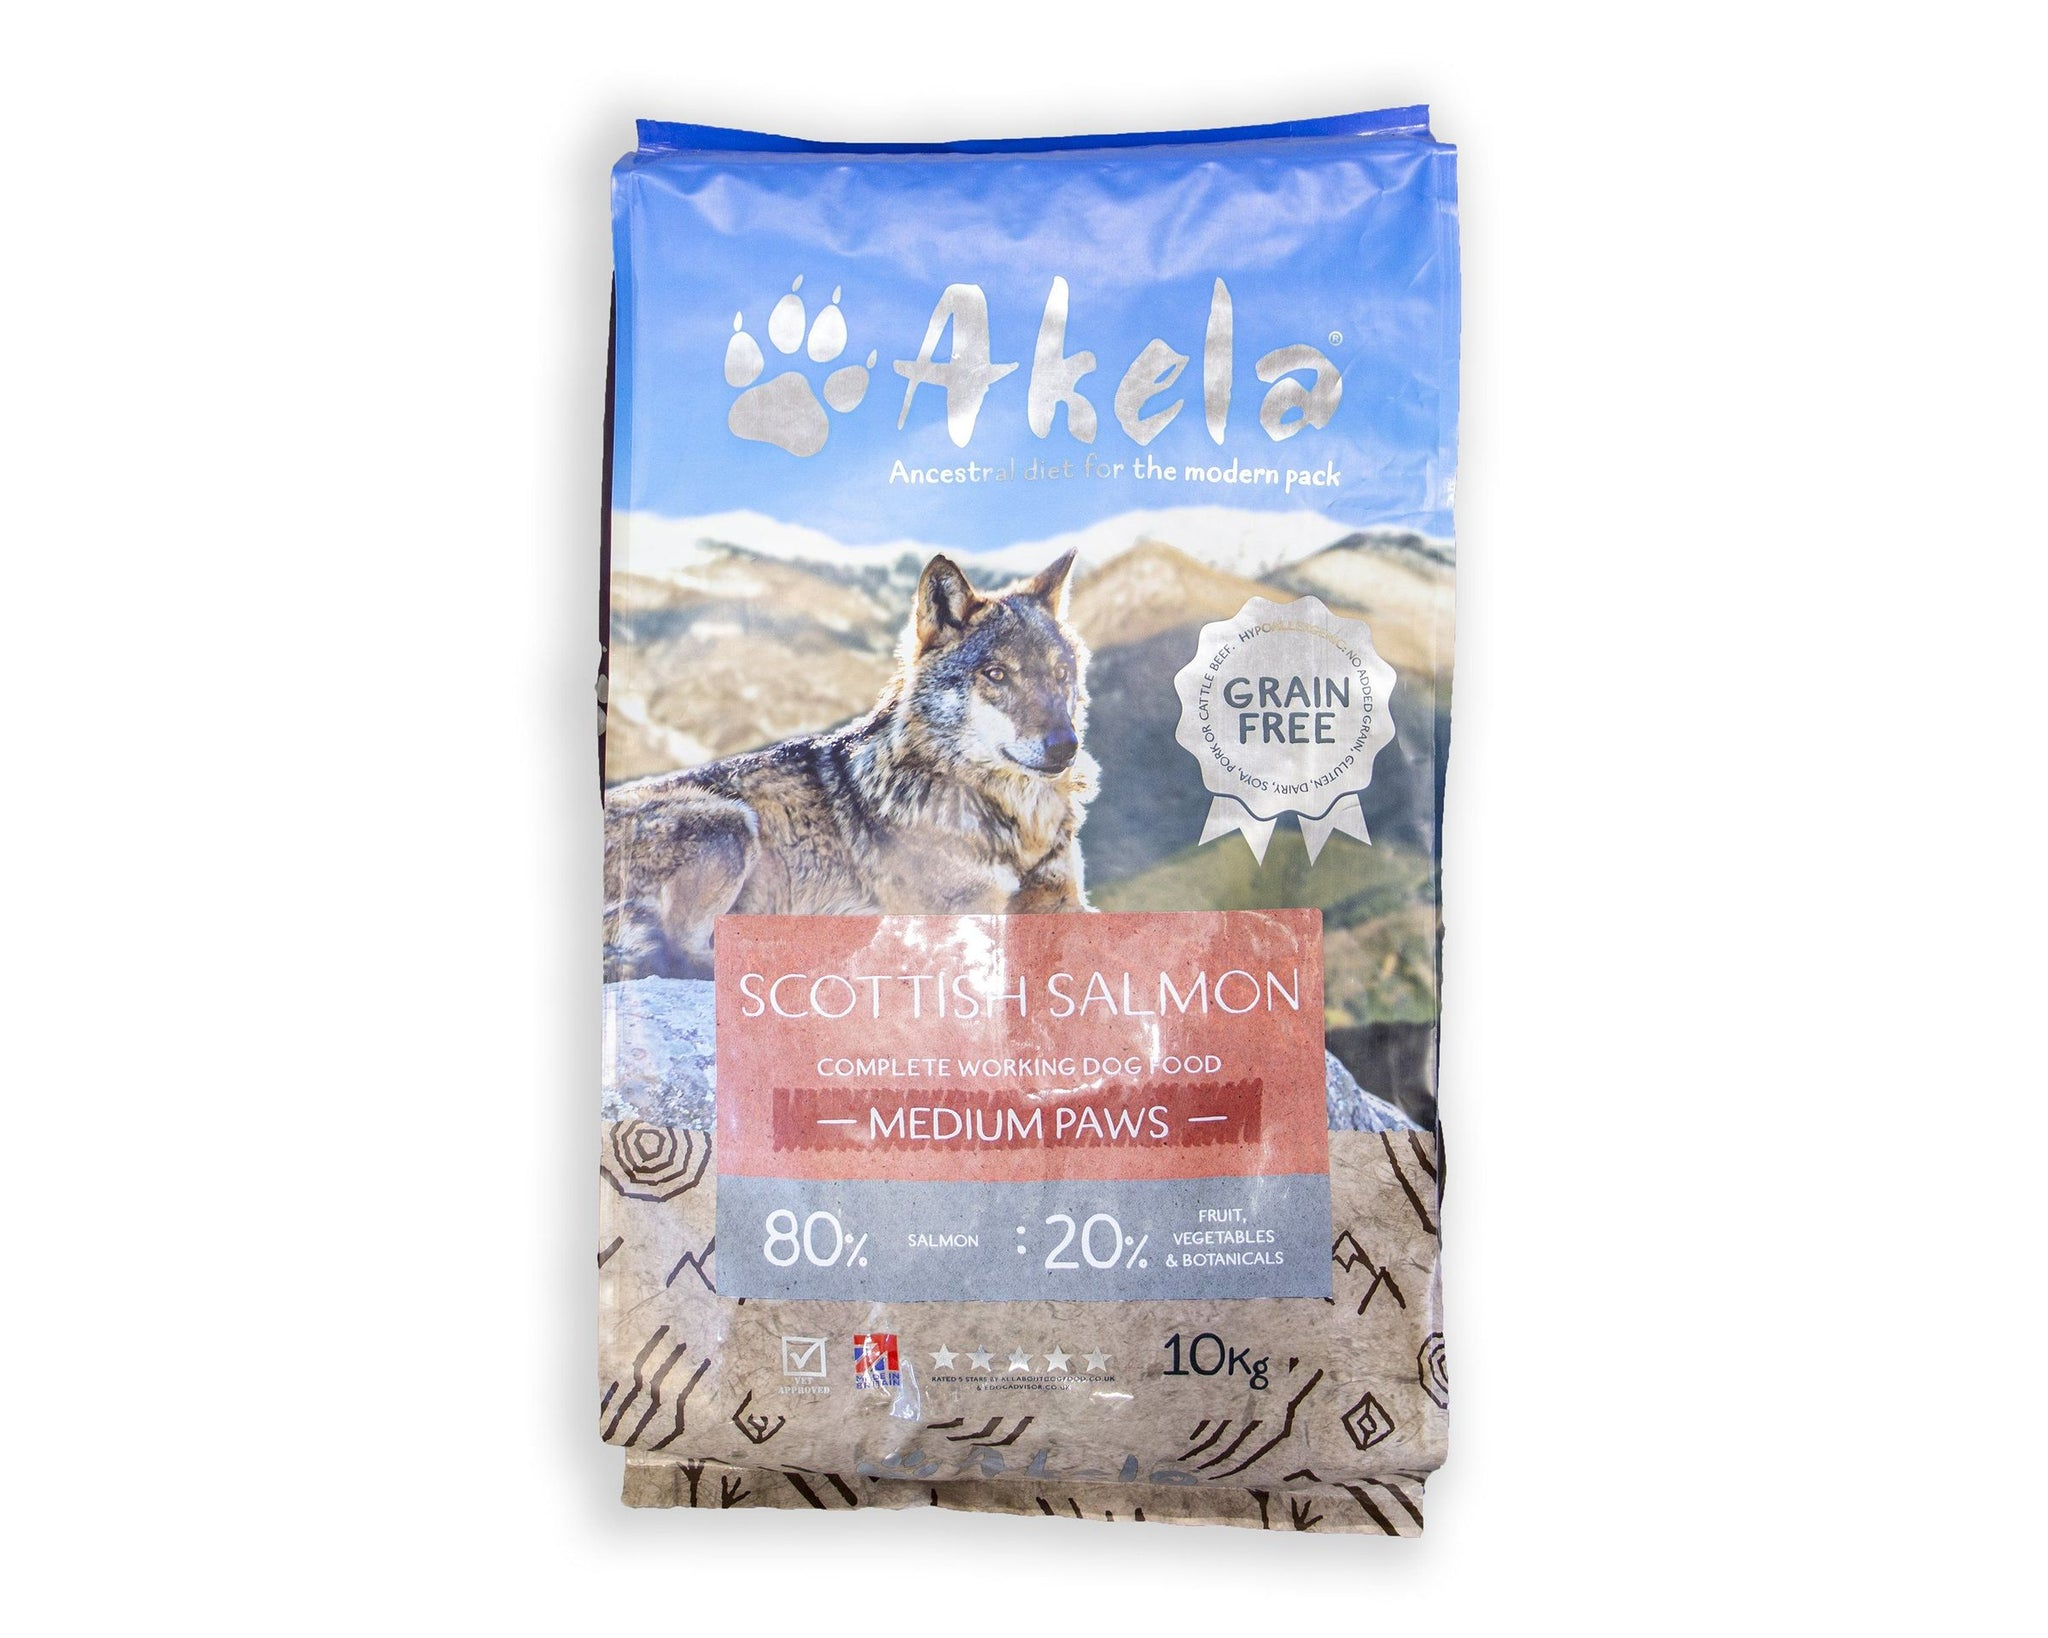 Akela 80:20 Puppy/Adult Scottish Salmon Grain-Free Working Dog Food